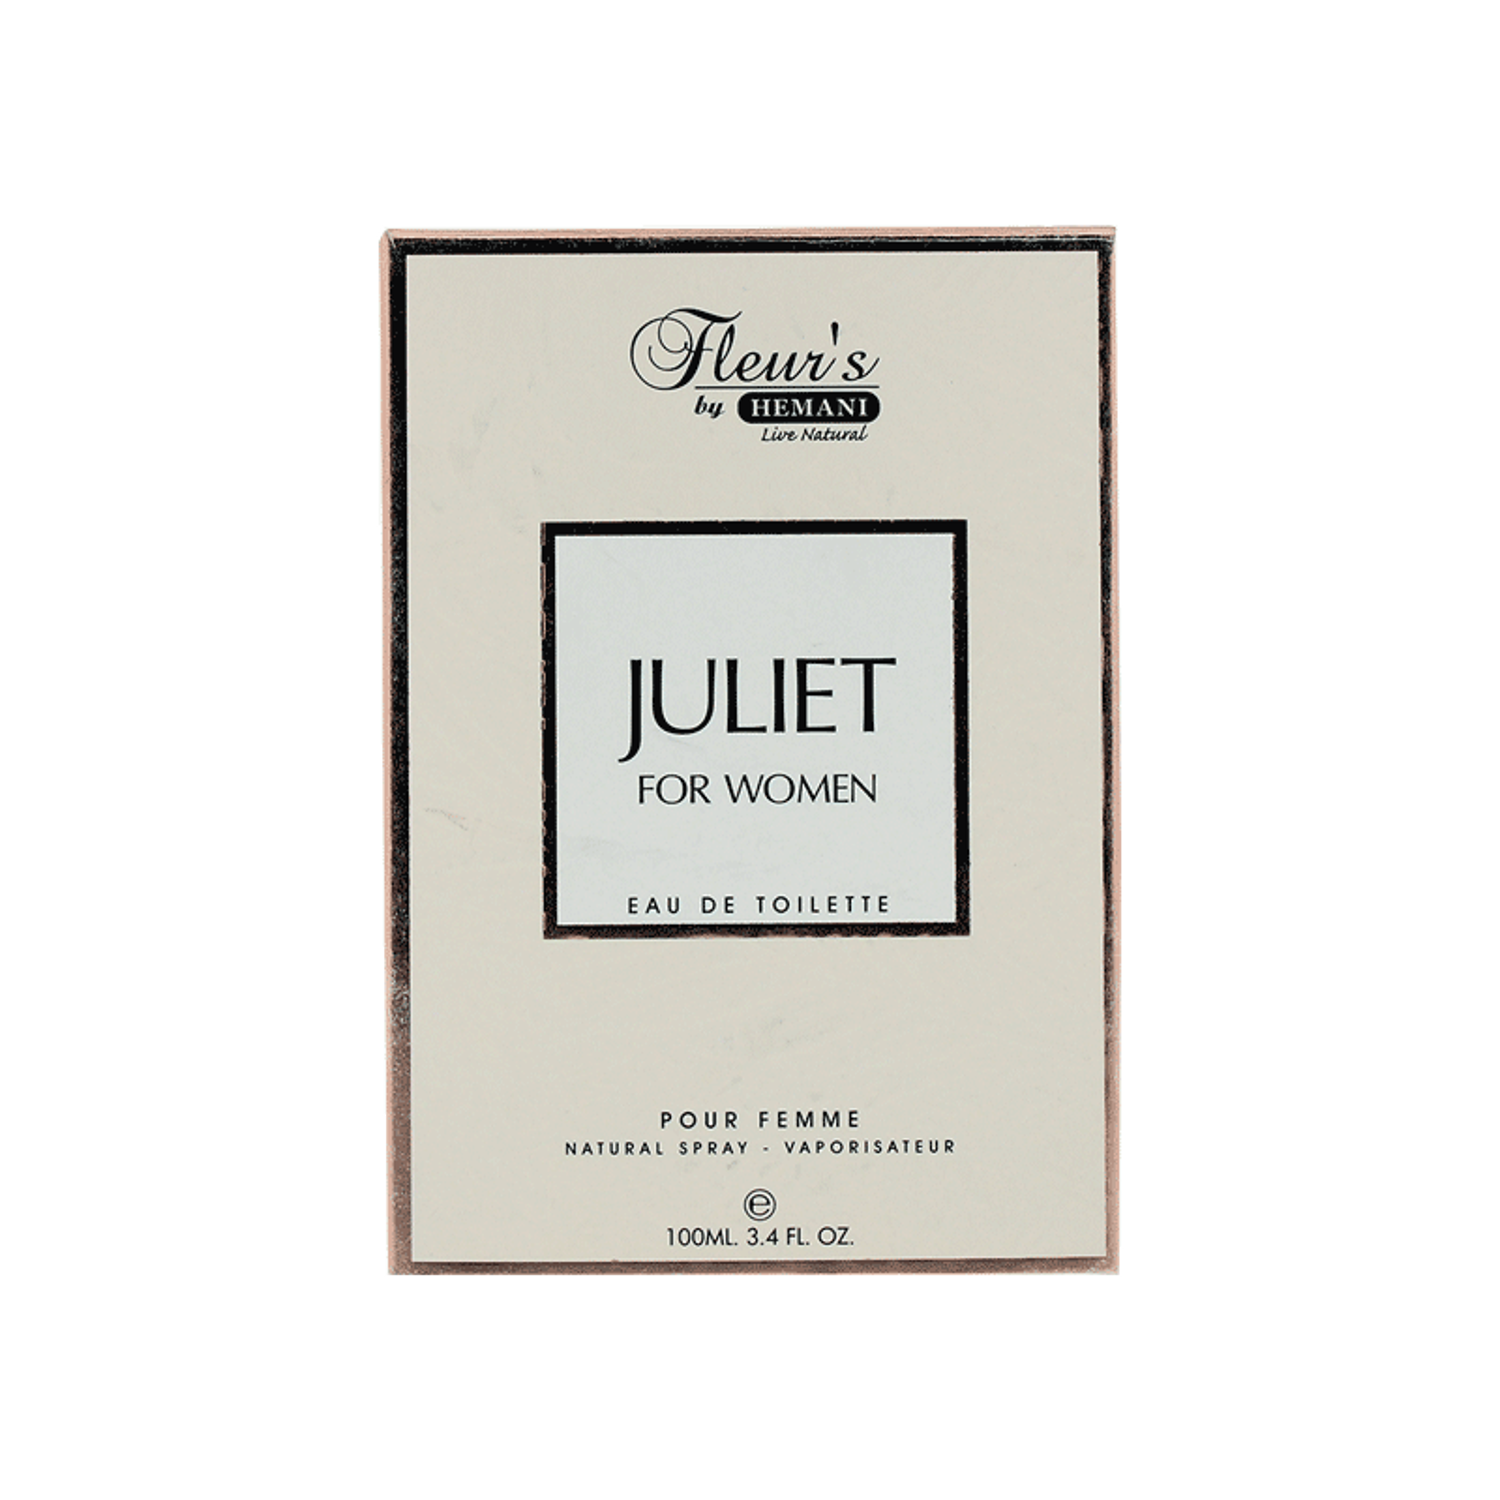 Juliet Perfume for Women - Fleur's by Hemani Herbals